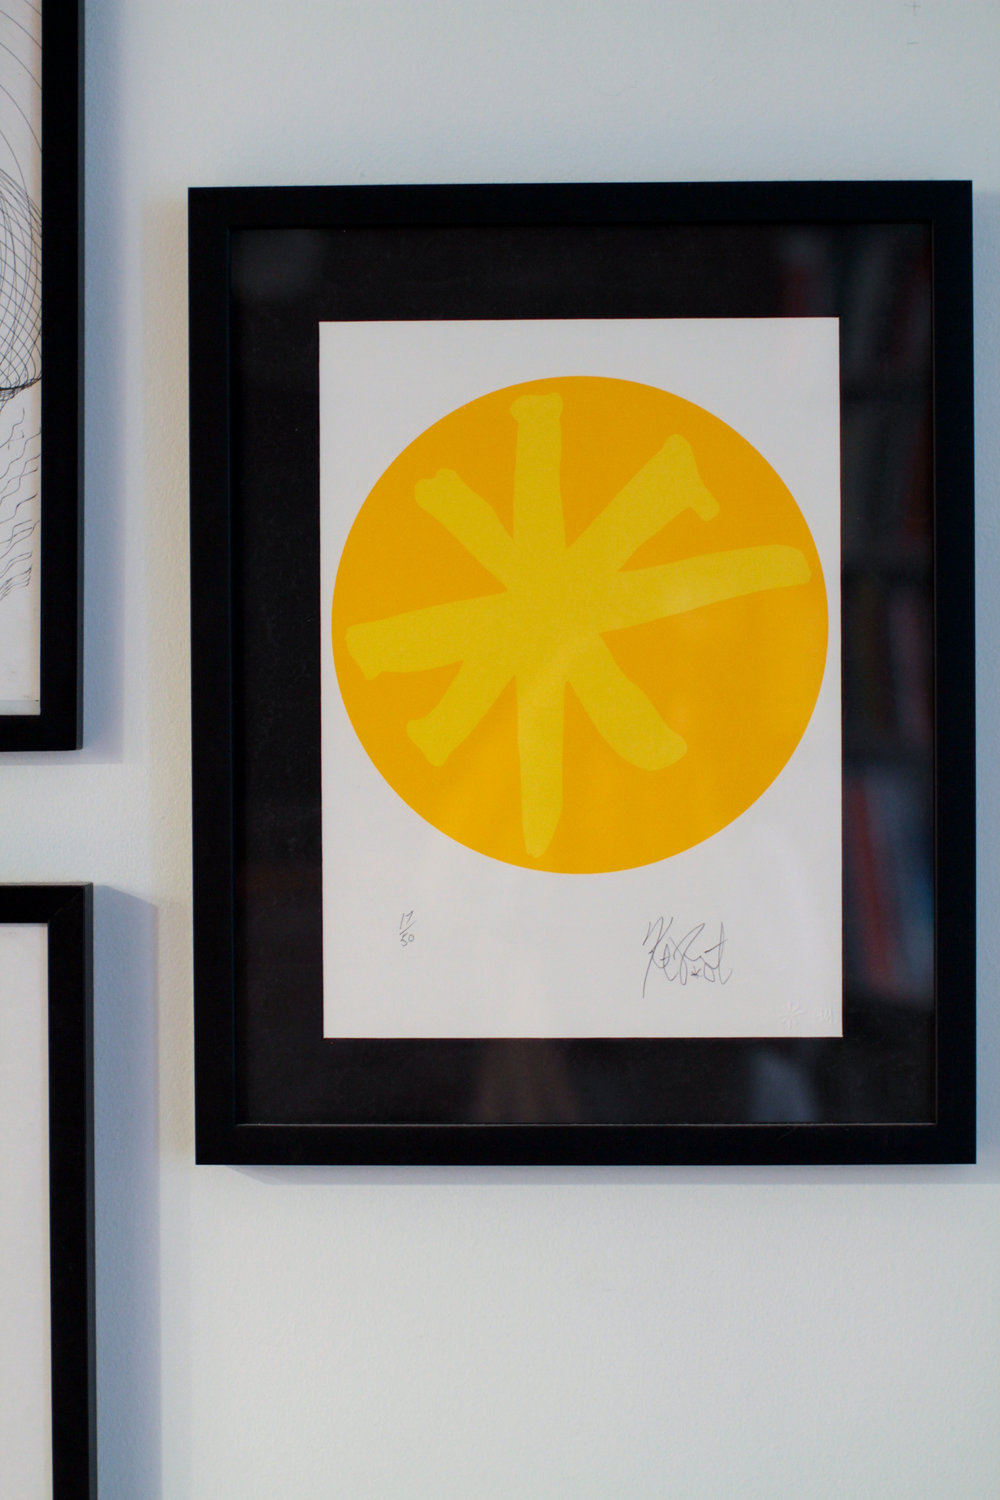 Yellow Portal , Kurt Vonnegut, silkscreen print by Joe Petro III, Print No. 17 of 50, signed 2006.